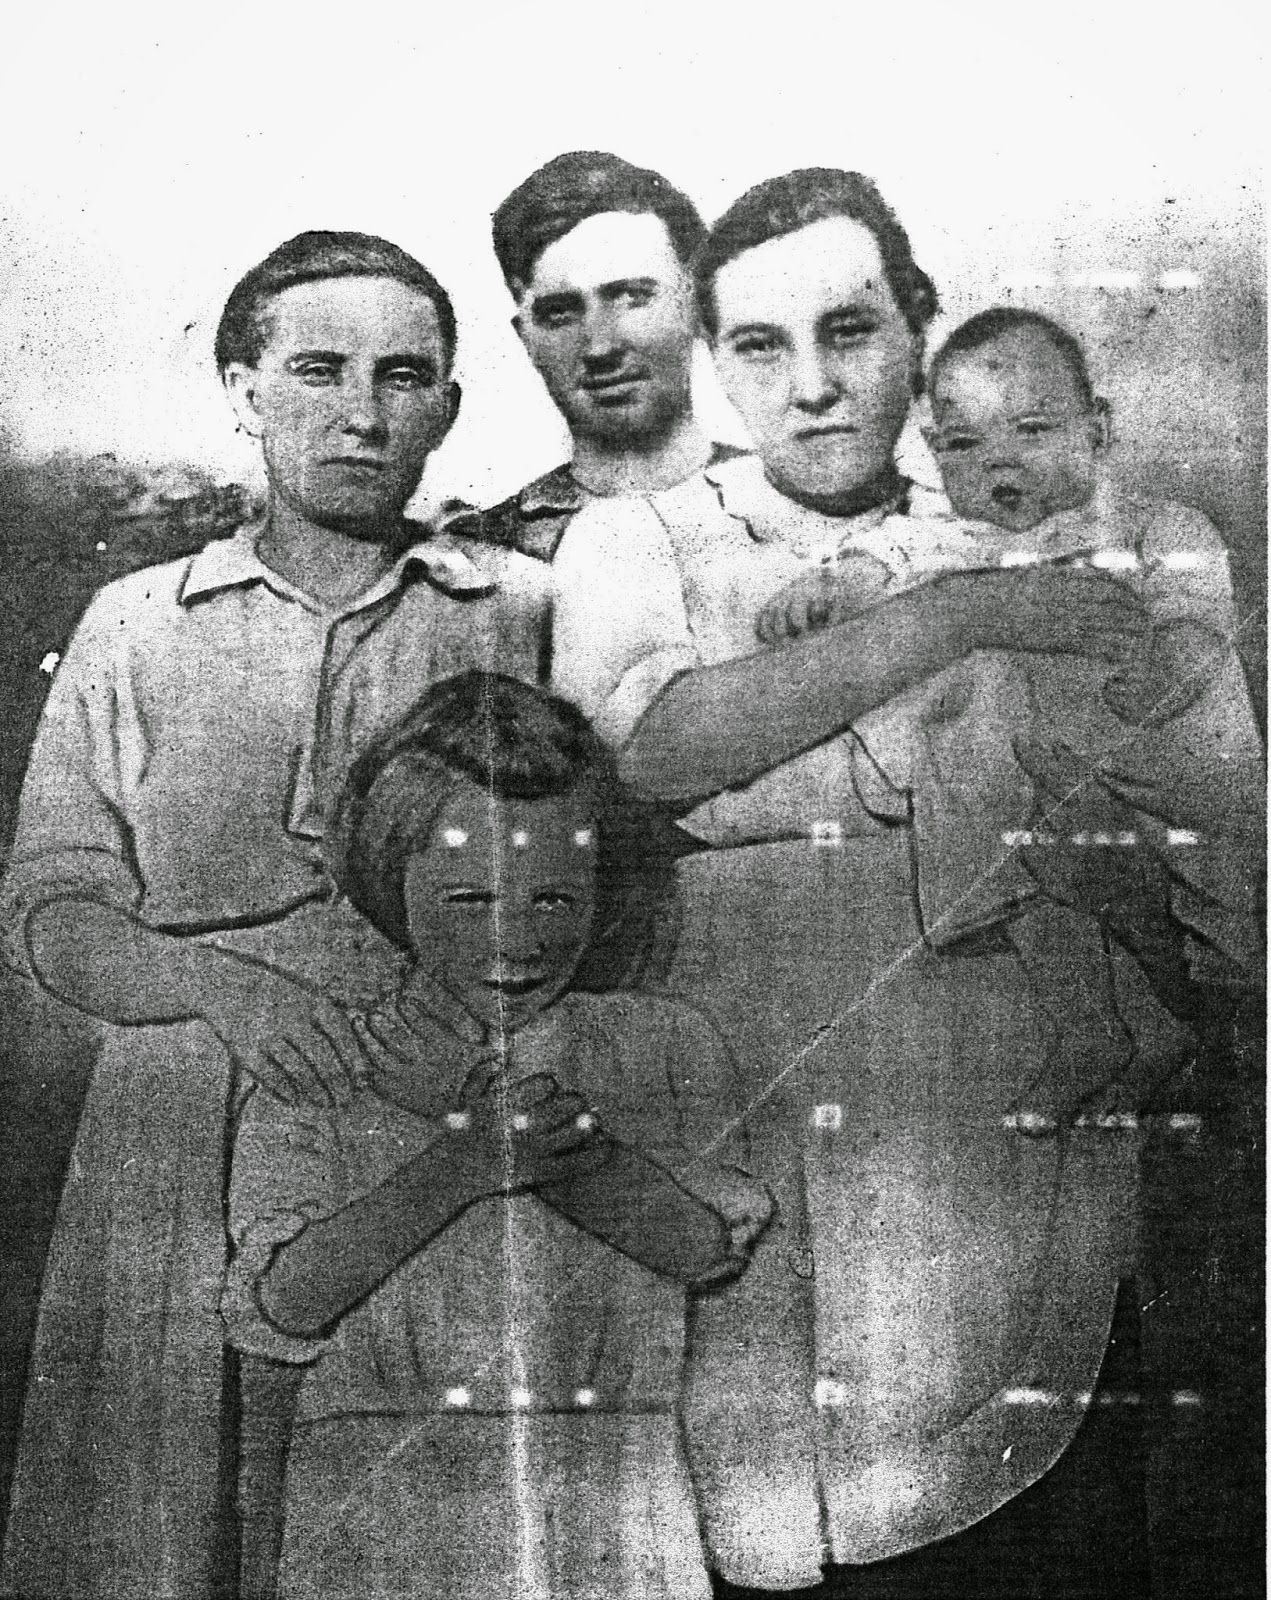 Coy Thomas Mathis and family in the 1910s